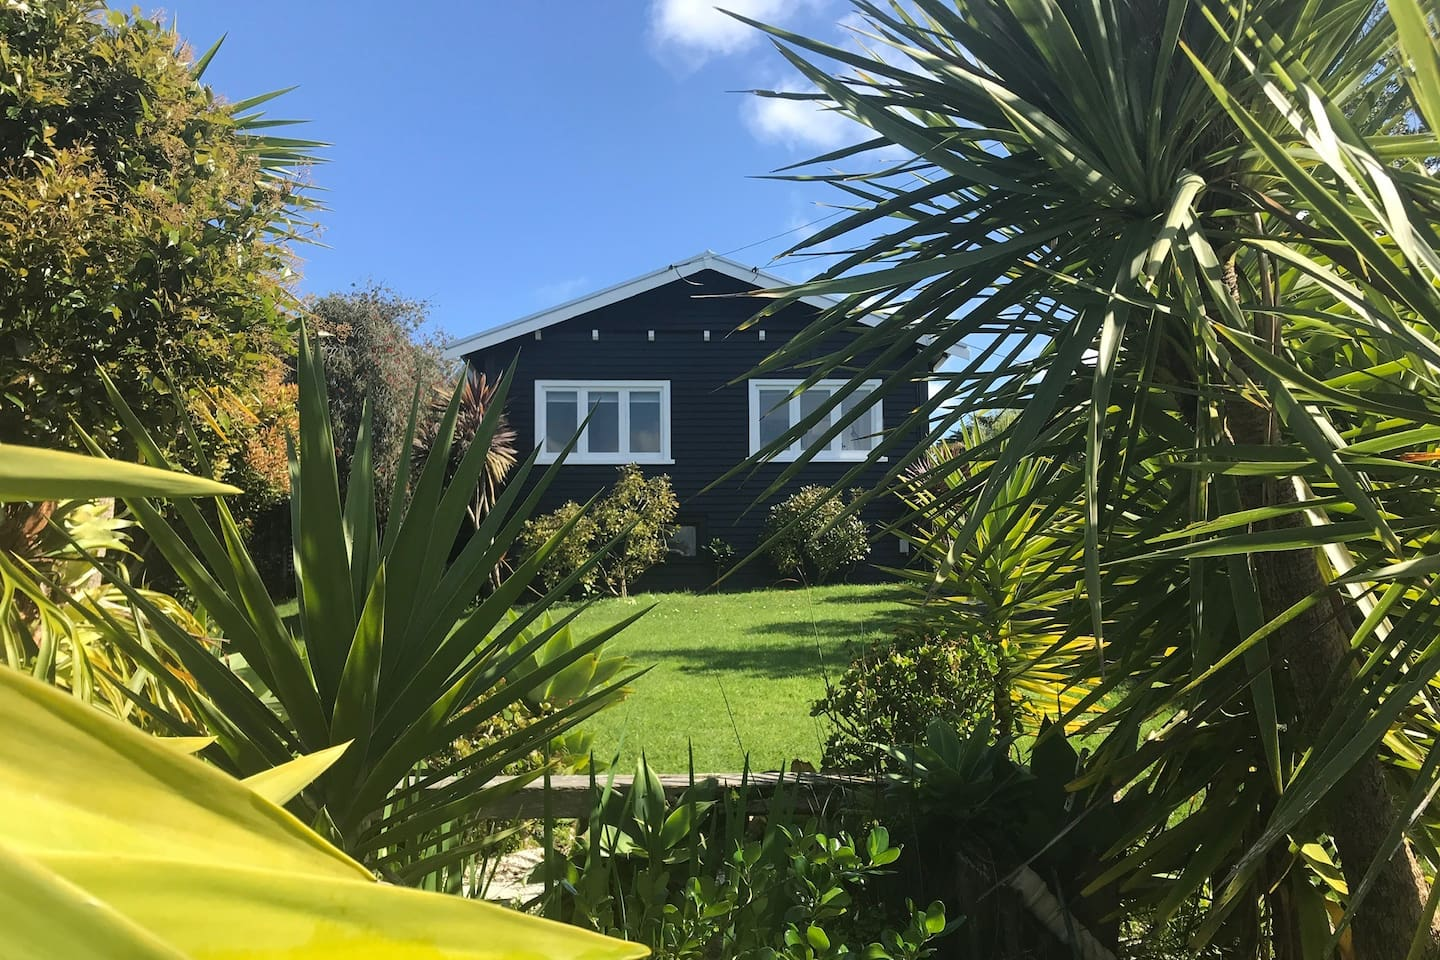 The Cottage on Weka Road